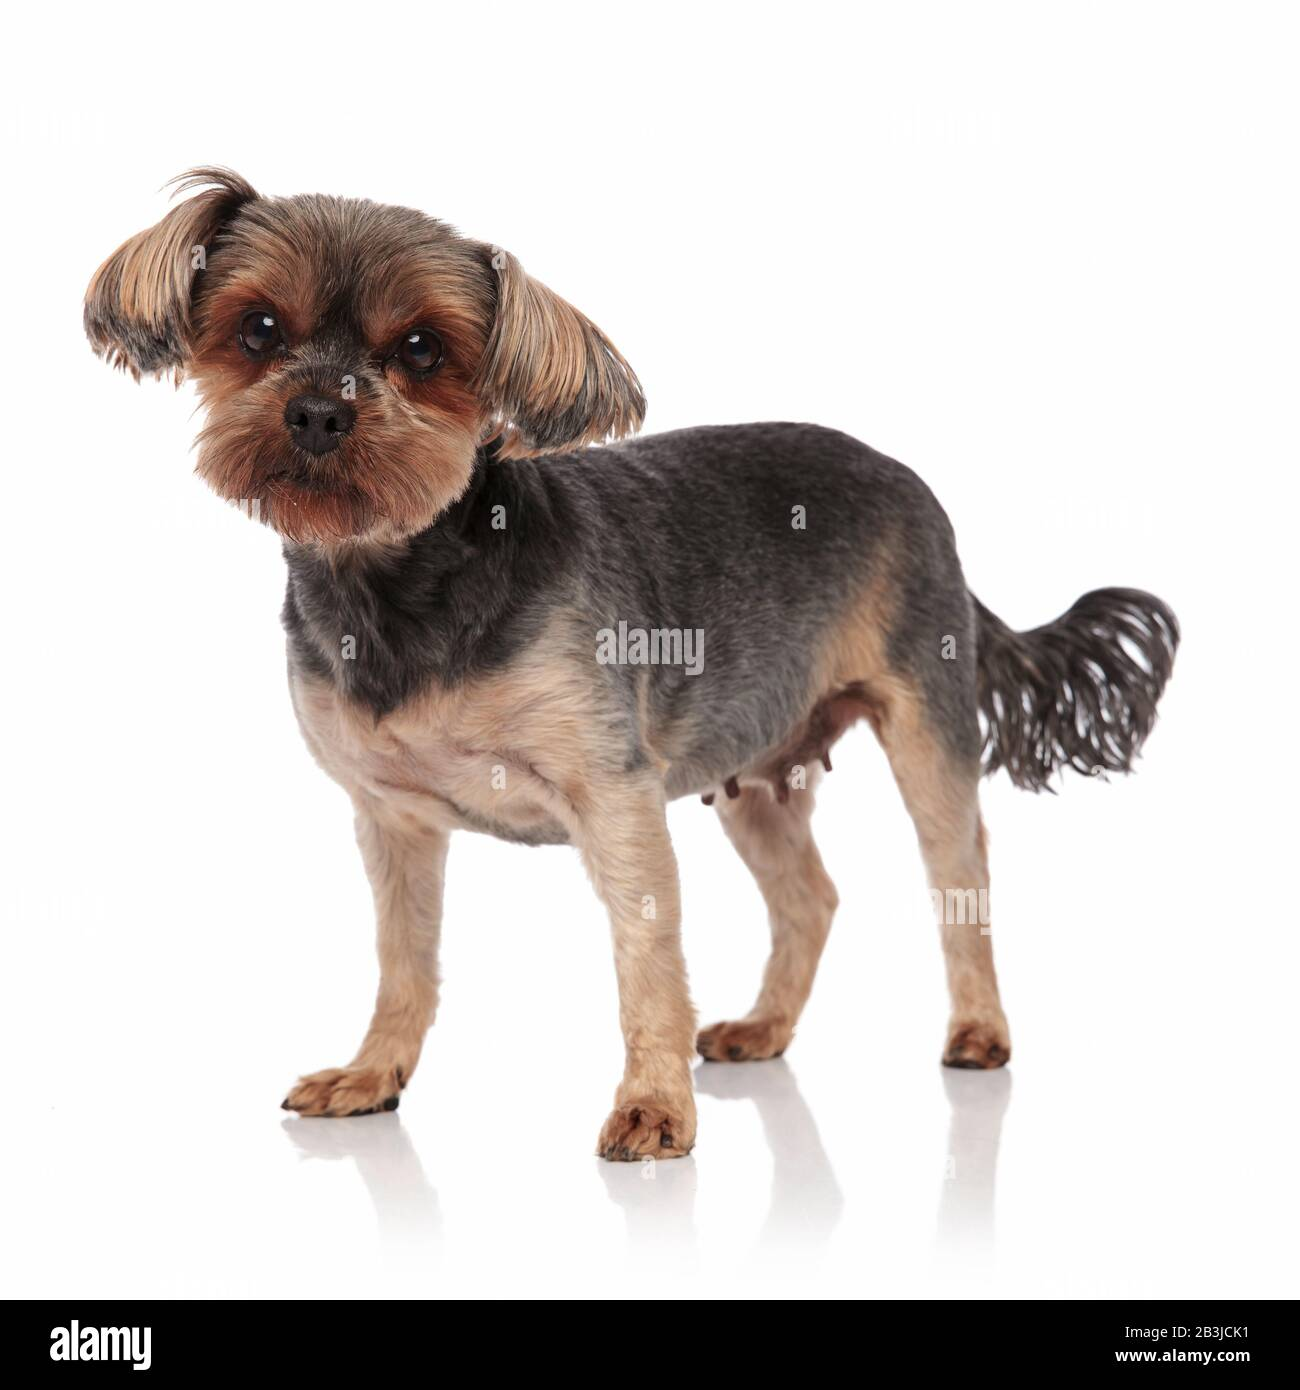 Side View Of Cute Yorkshire Terrier Moving Tail And Standing Isolated On White Background Full Body Stock Photo Alamy